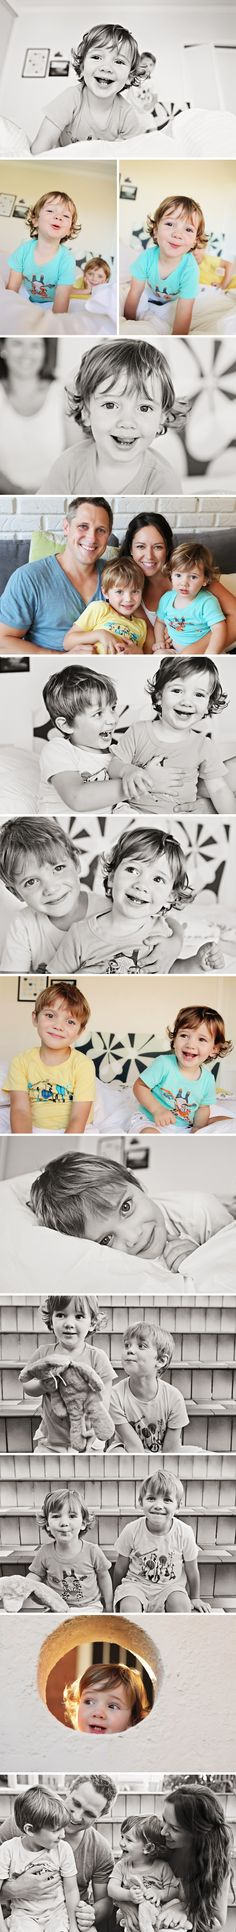 We loved the innocence that Rowe Timson captured in these two little guys, it was so pure and honest.     ©Roweena Timson